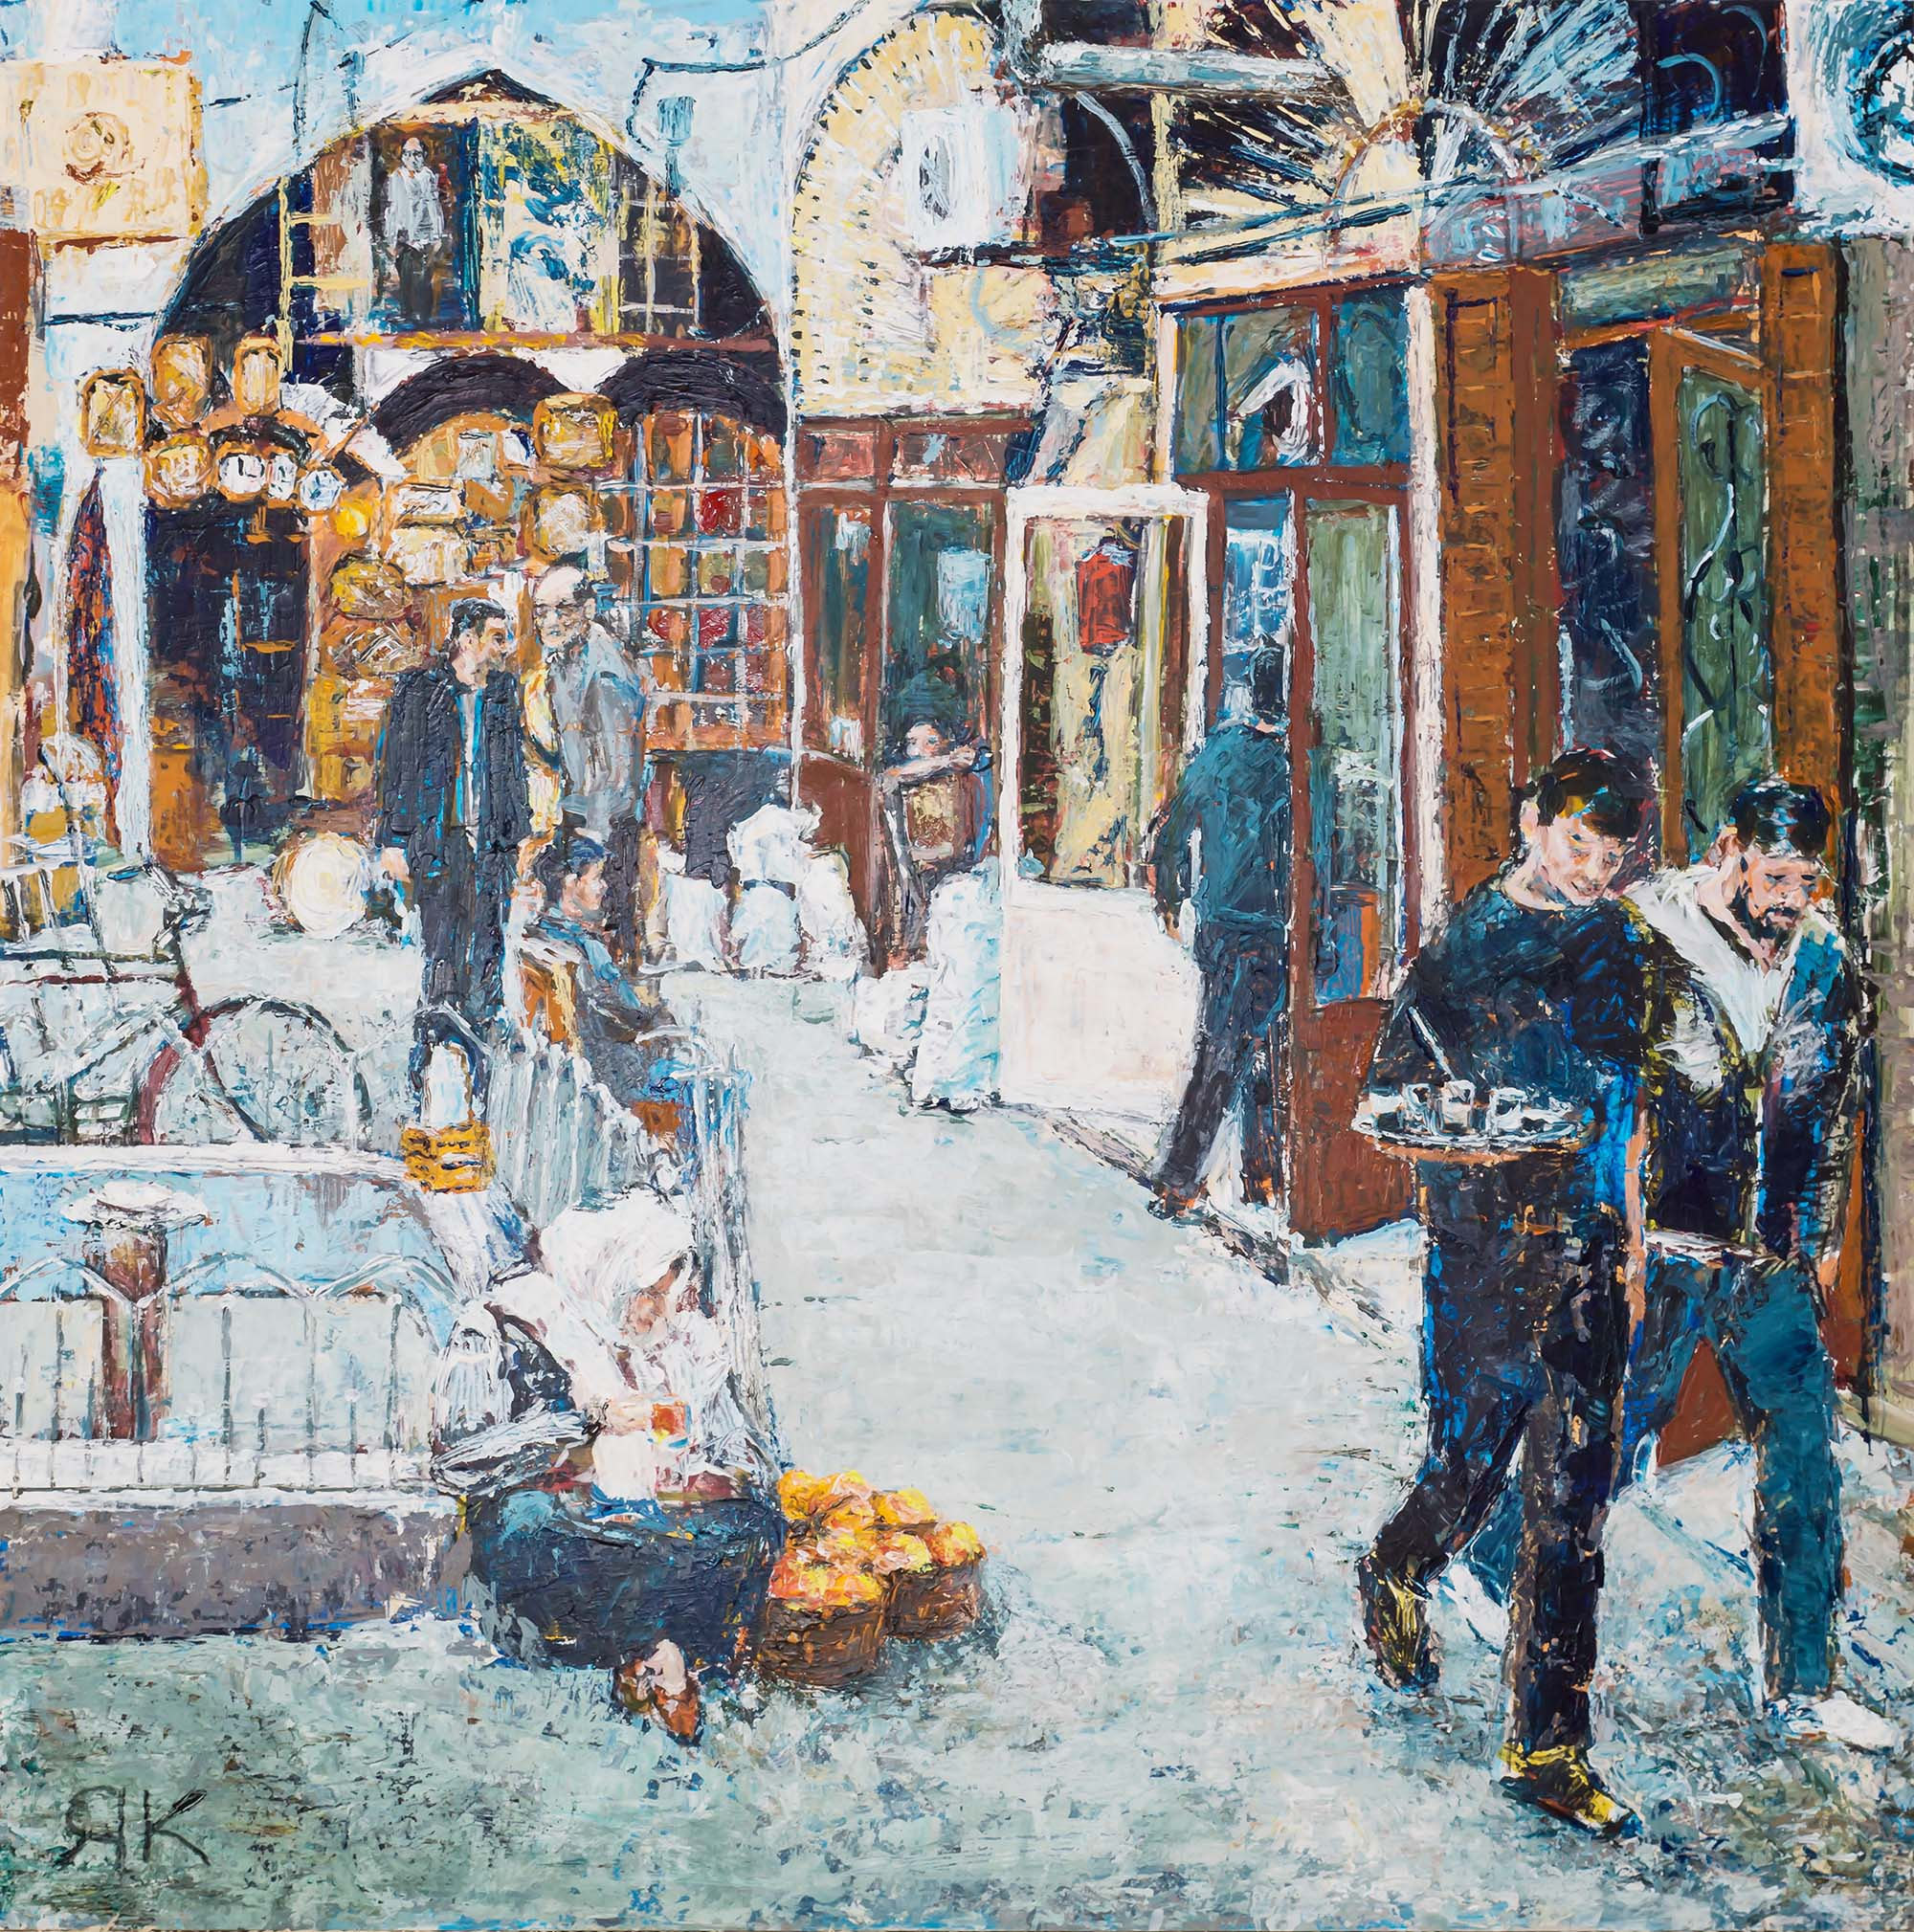 Turkish bazar market with visitors by Ria Kieboom